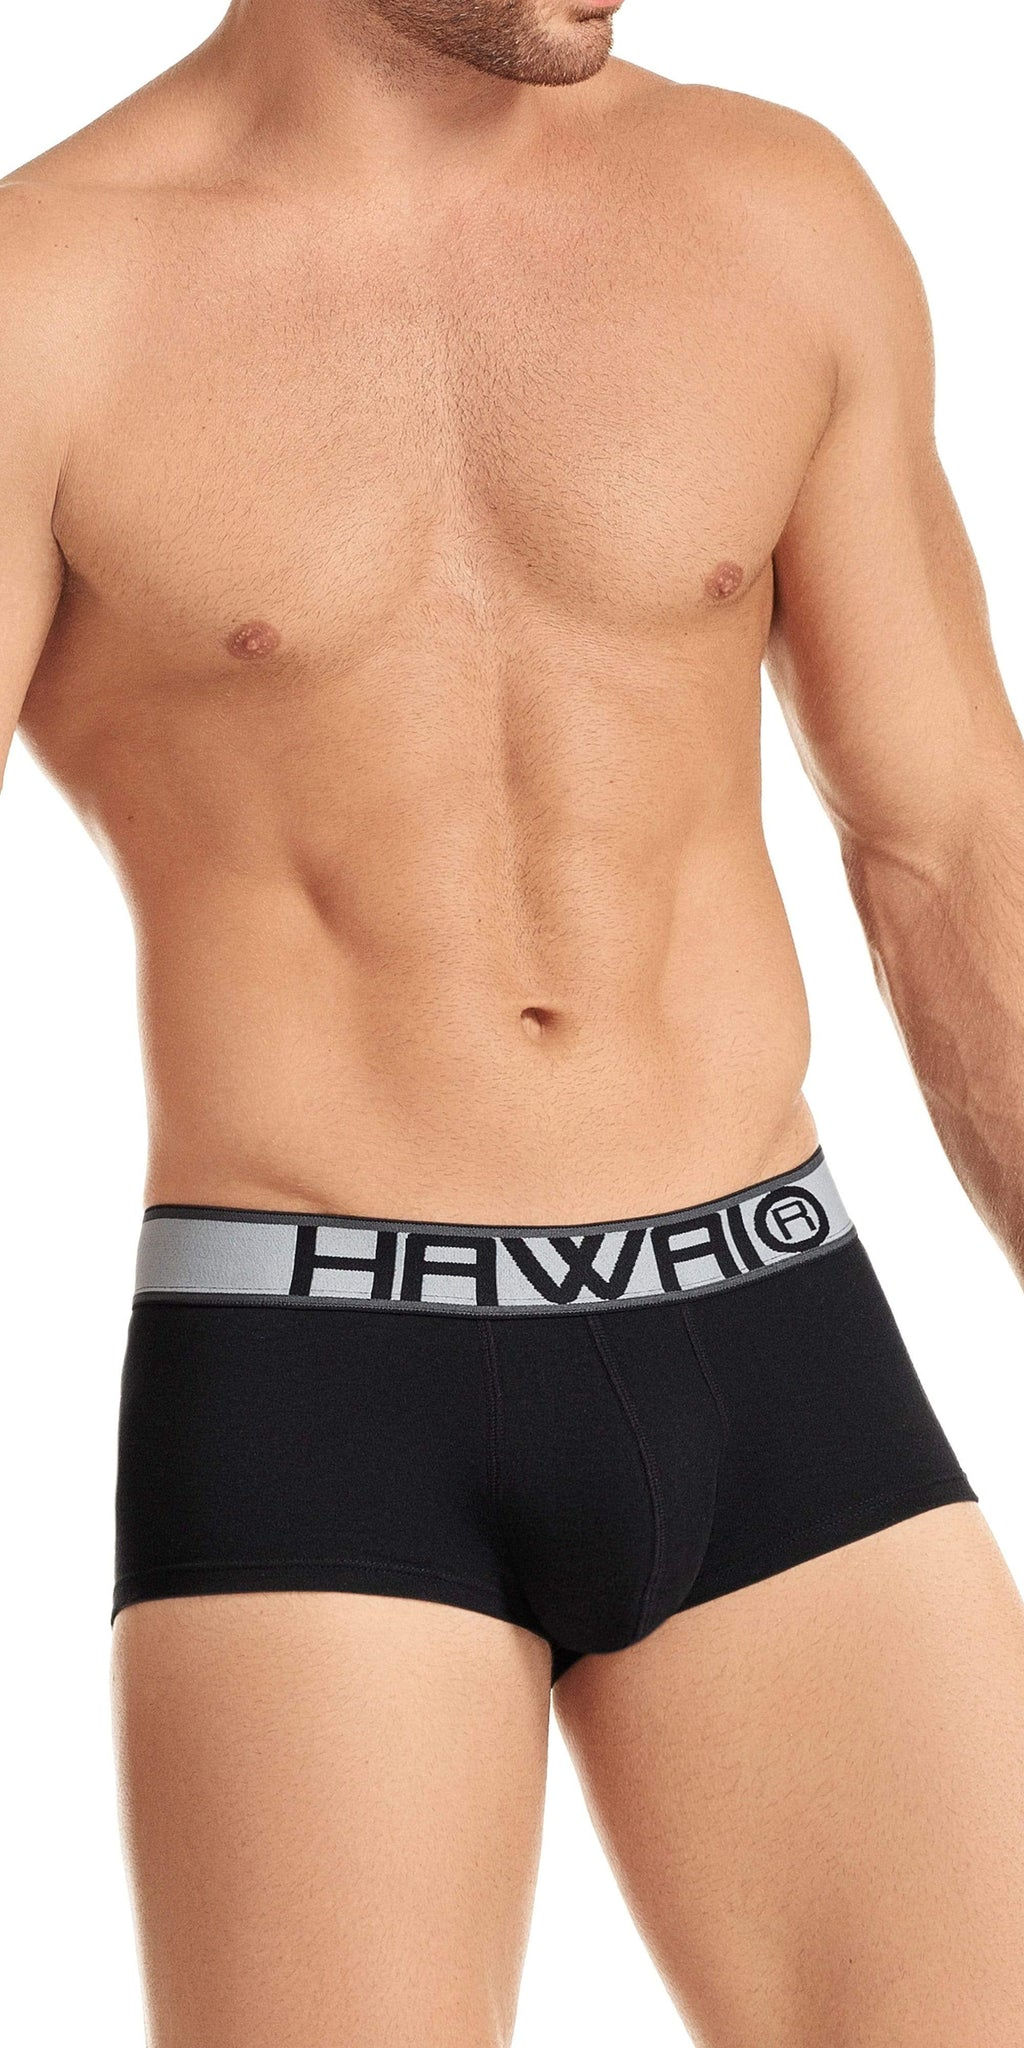 HAWAI Trunk In Black